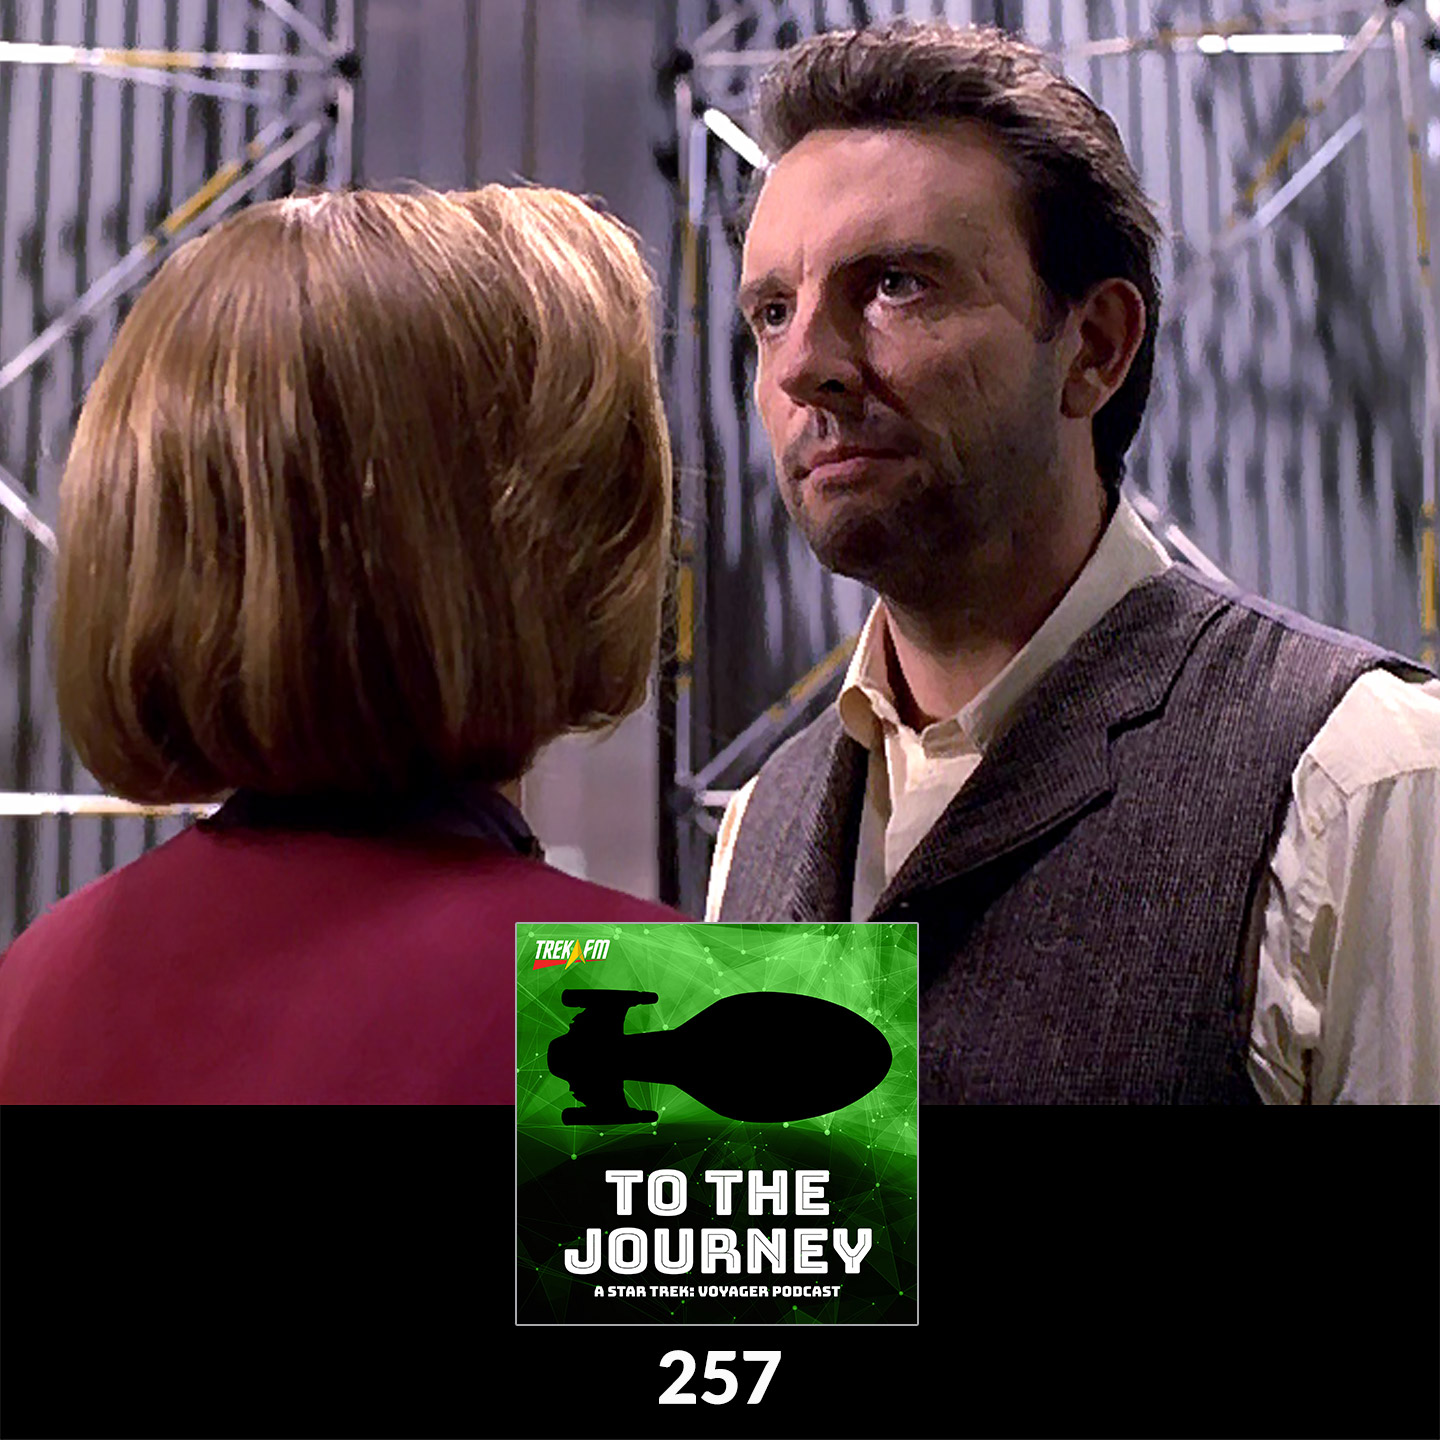 To The Journey 257: BYOC (Build Your Own Chakotay) - Desert Island Episodes - Voyager Season 6.